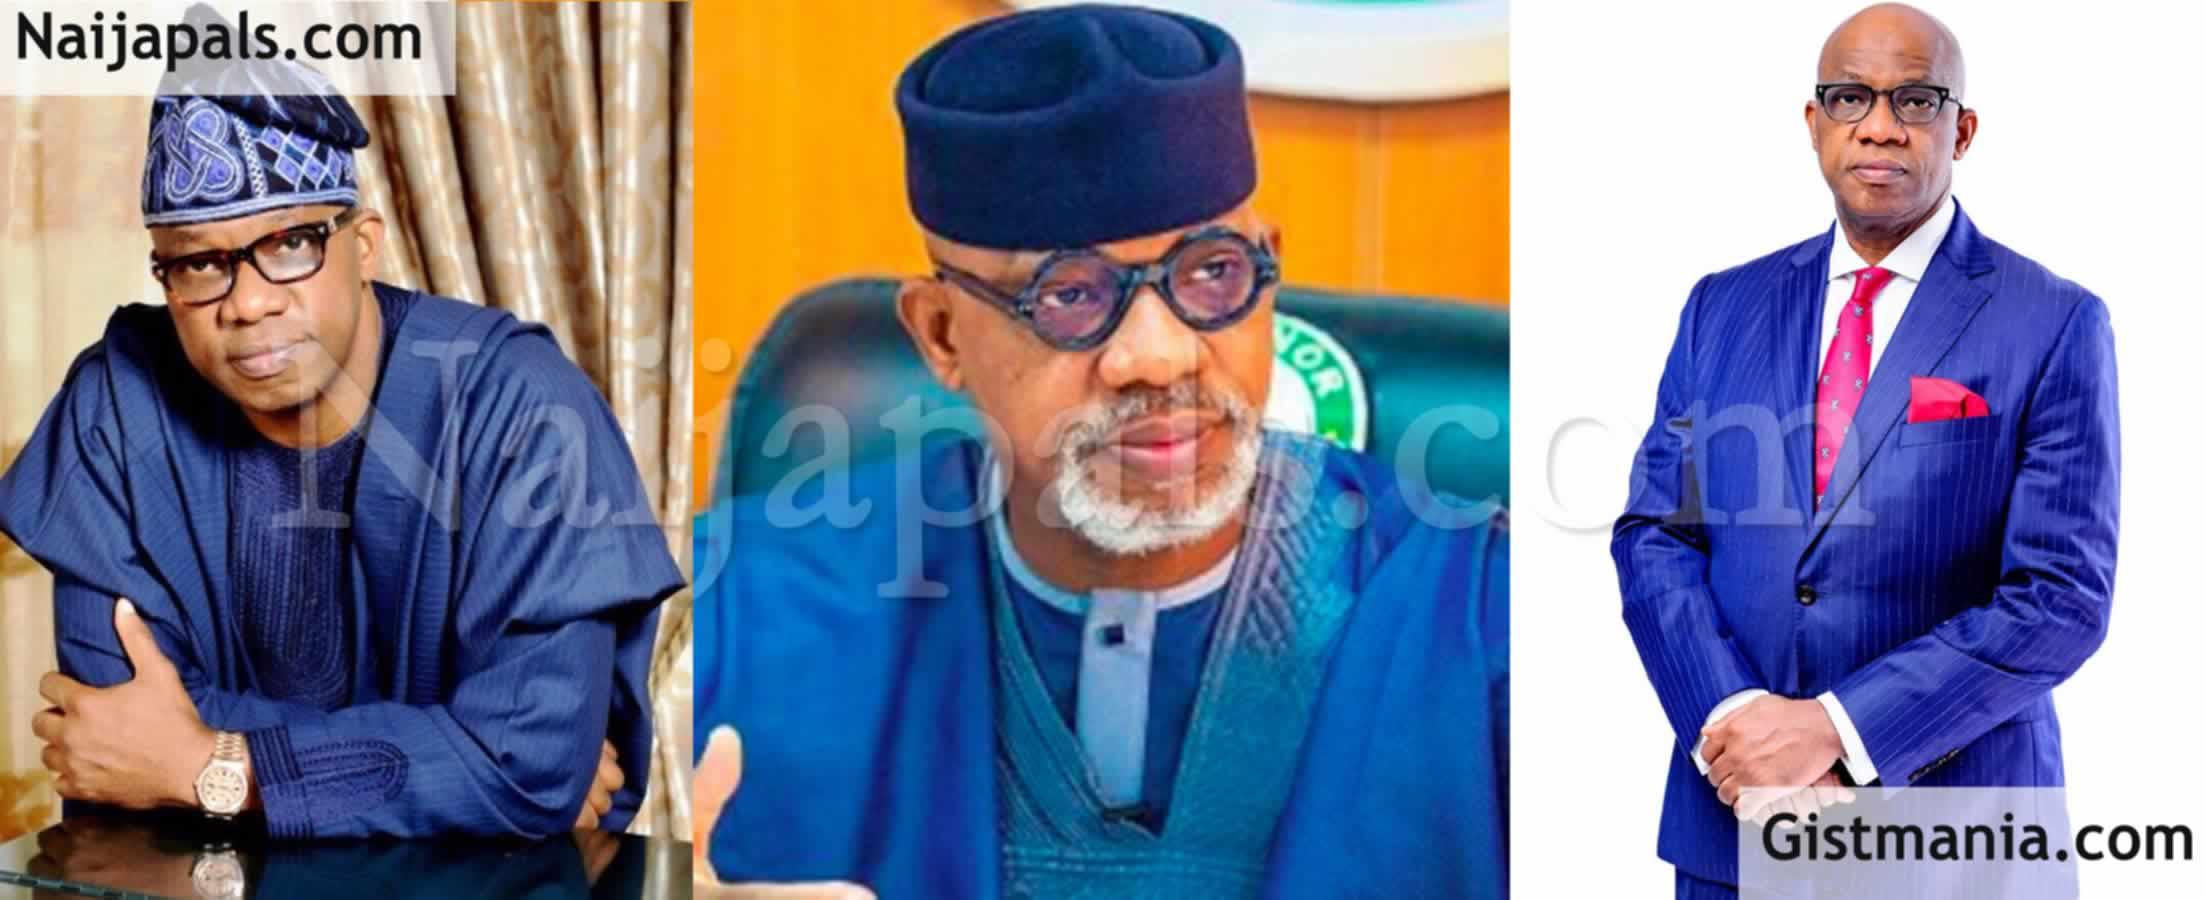 <img alt='.' class='lazyload' data-src='https://img.gistmania.com/emot/comment.gif' /> PANDORA PAPERS! <b>Ogun State Governor, Dapo Abiodun Implicated In Offshore Scandal</b>